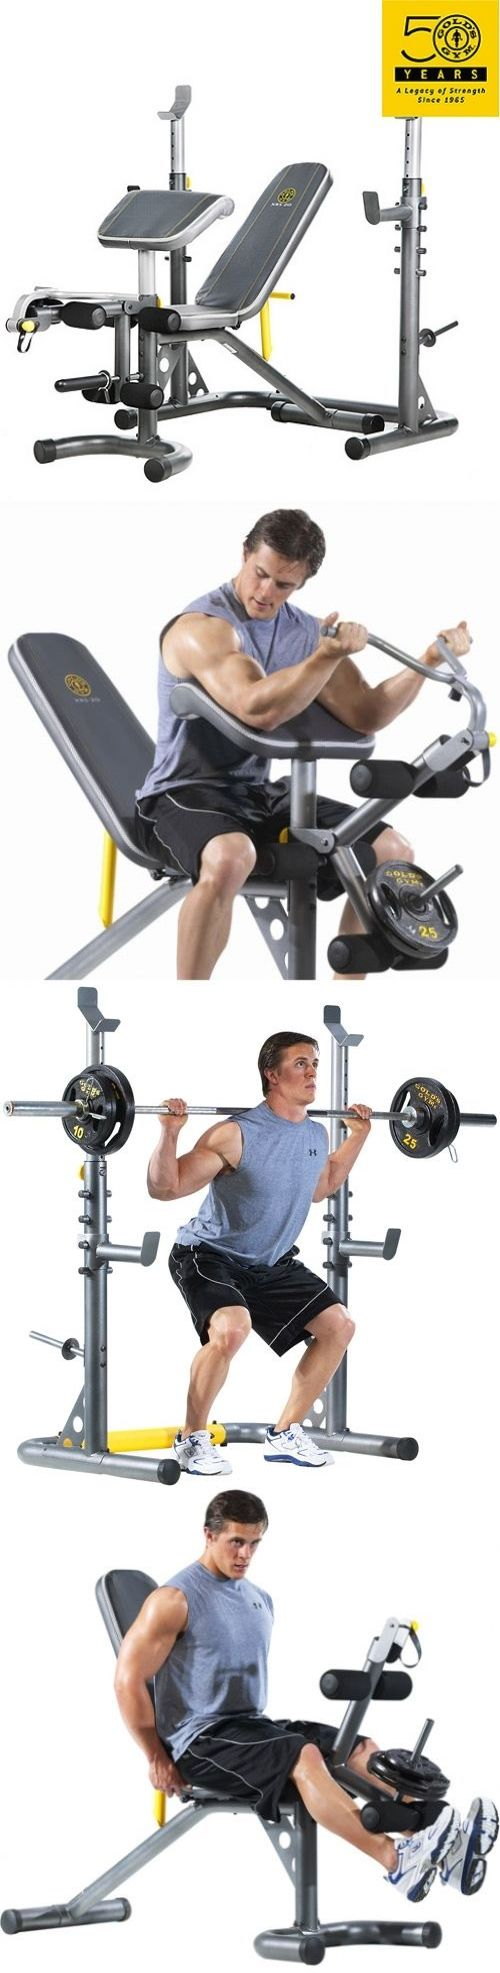 Home Gyms 158923: Workout Weight Bench Press Incline Decline Machine Gym Squat Lifting Rack New -> BUY IT NOW ONLY: $206.92 on eBay!